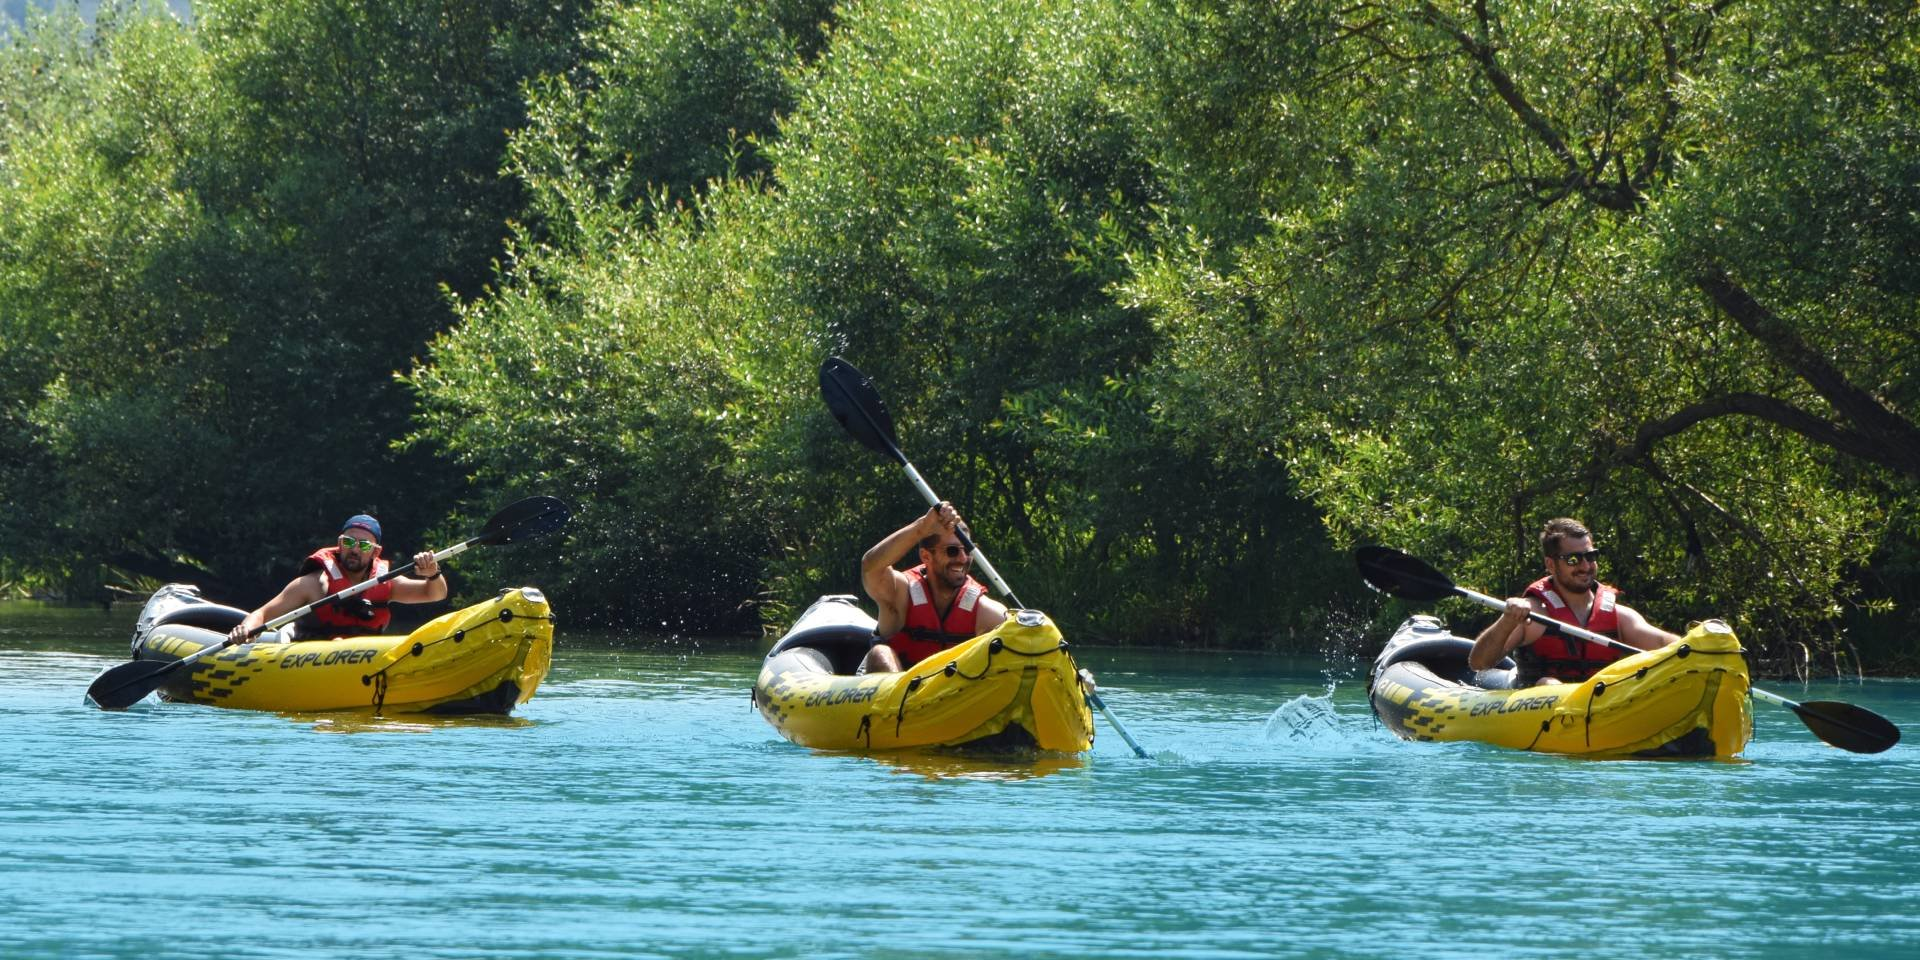 RETURN TO NATURE – KAYAKING ON THE IBAR RIVER